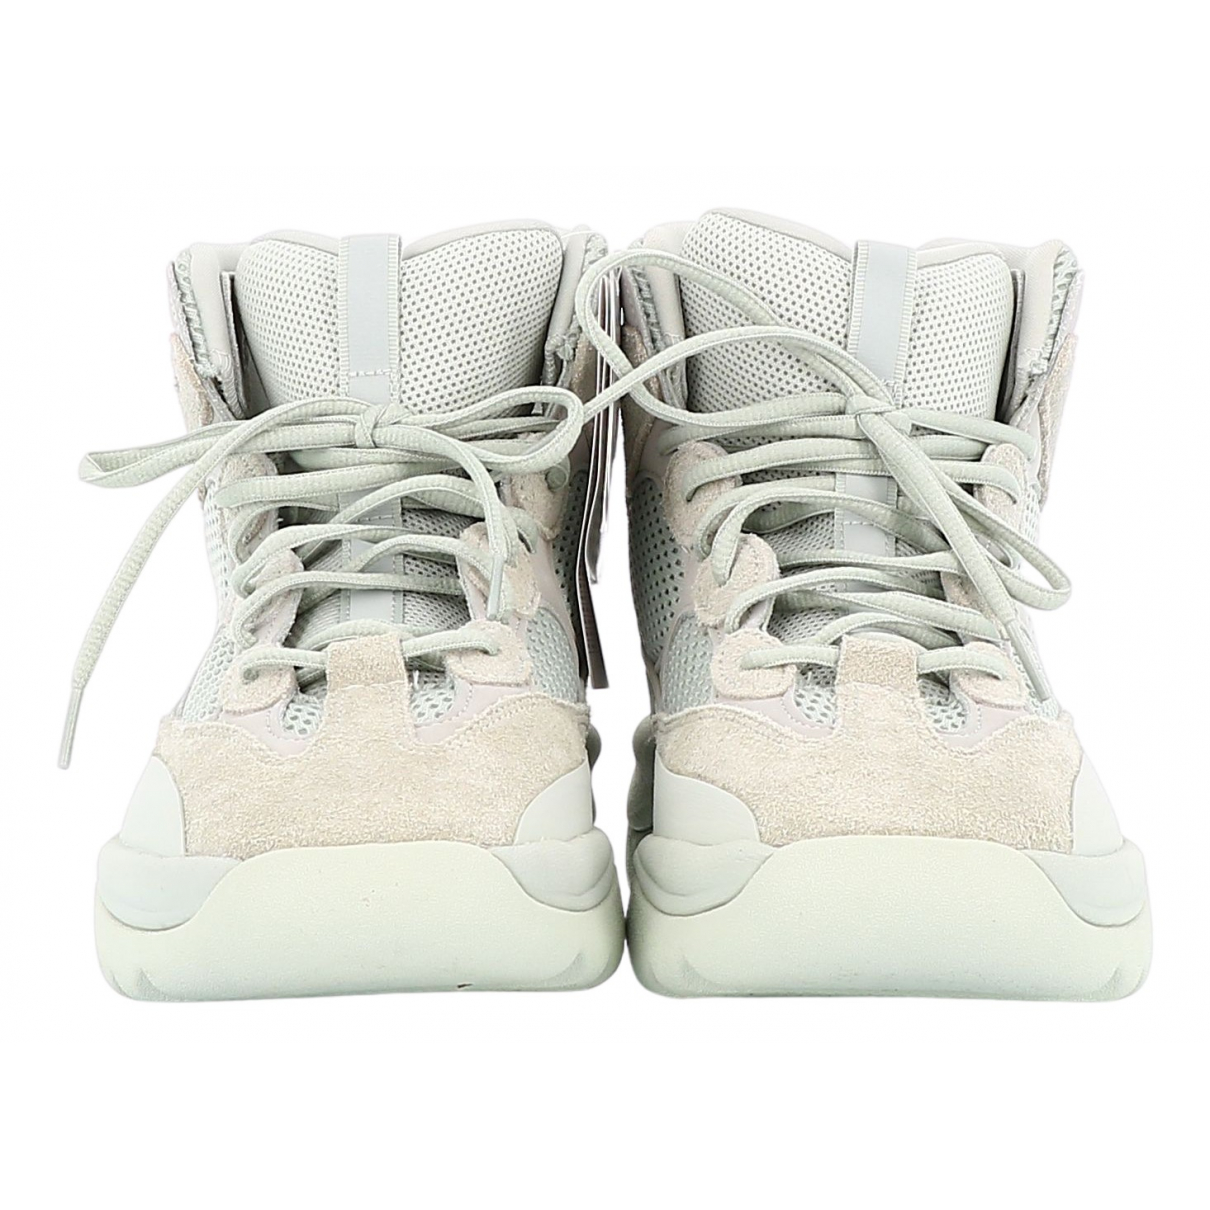 Yeezy X Adidas \N Beige Leather Boots for Men 43 EU